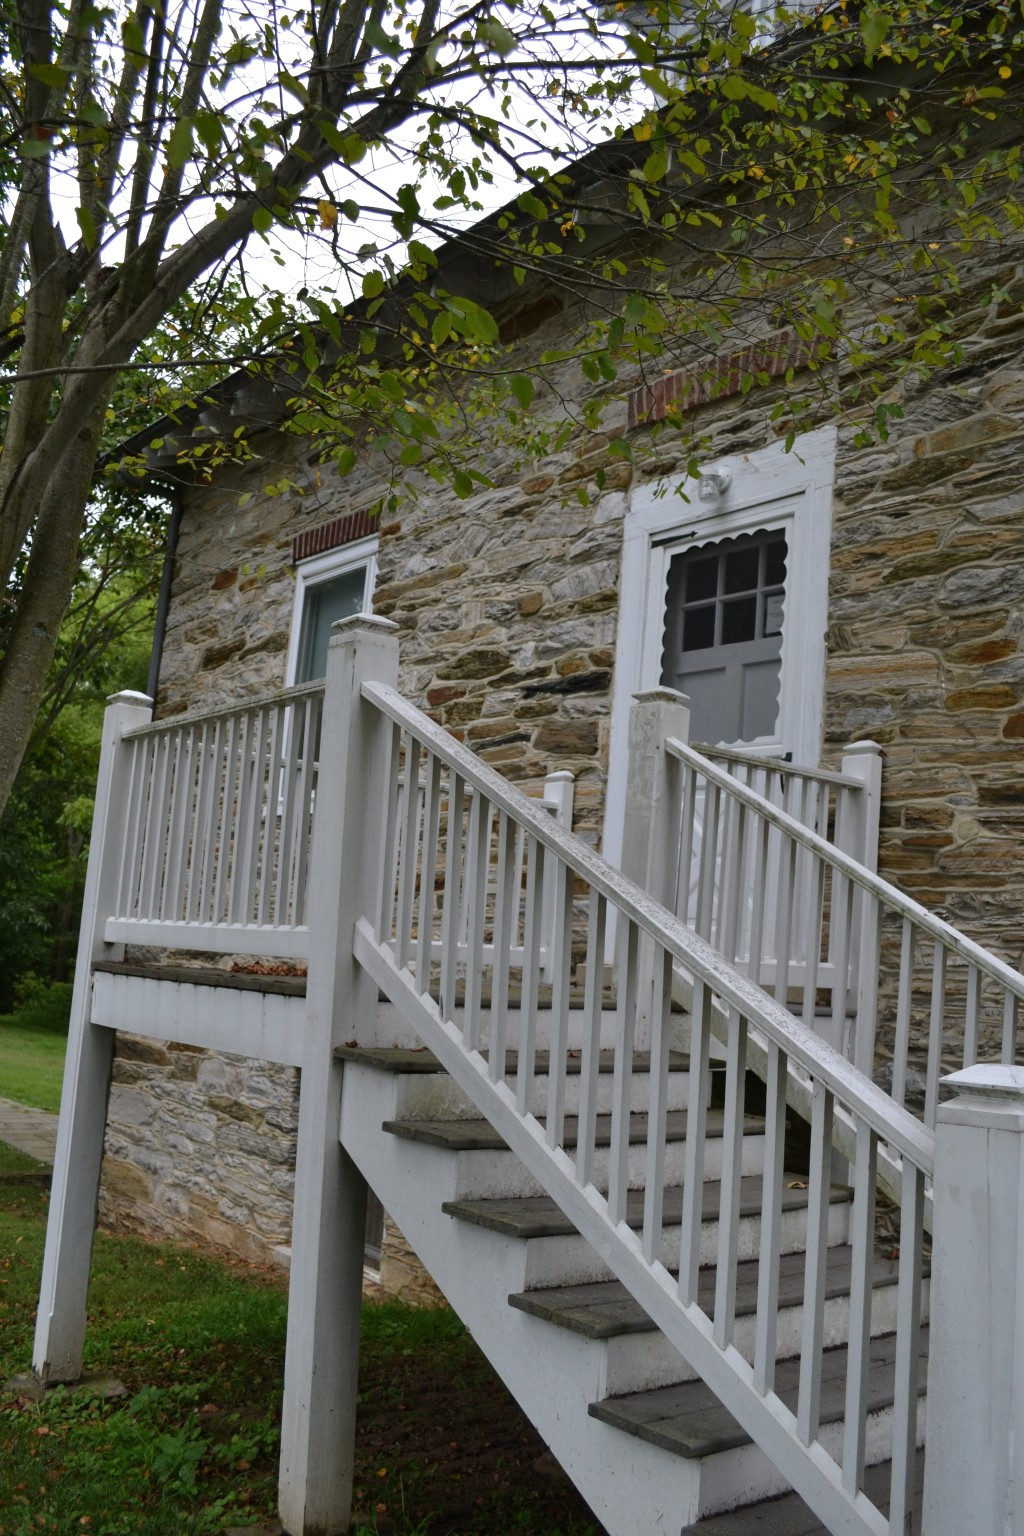 The front porch of the mill house, where my mother was born, and lived the first few years of her life.